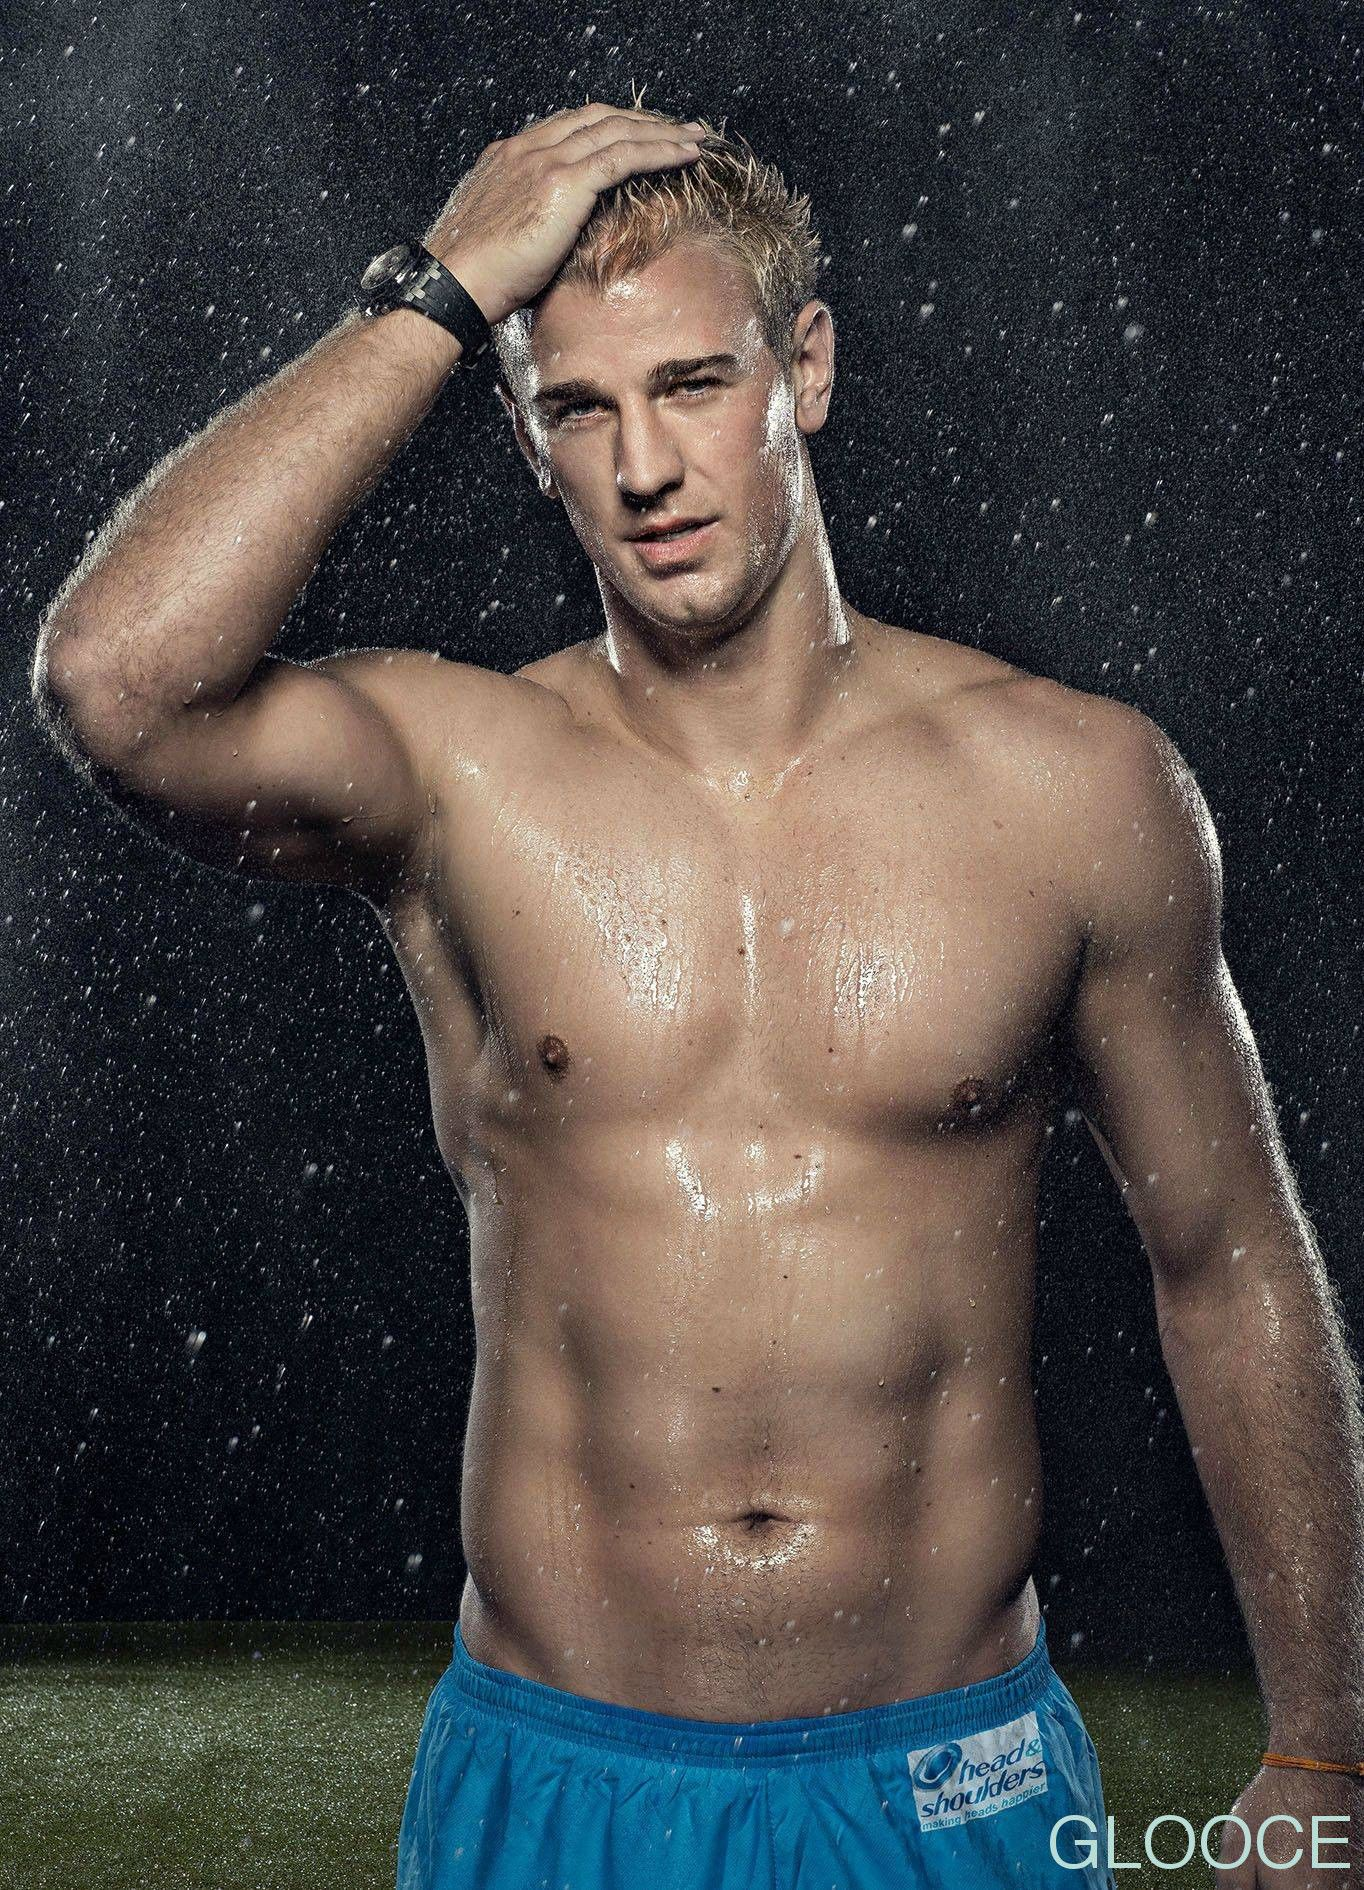 Joe Hart is not the only one ting wet